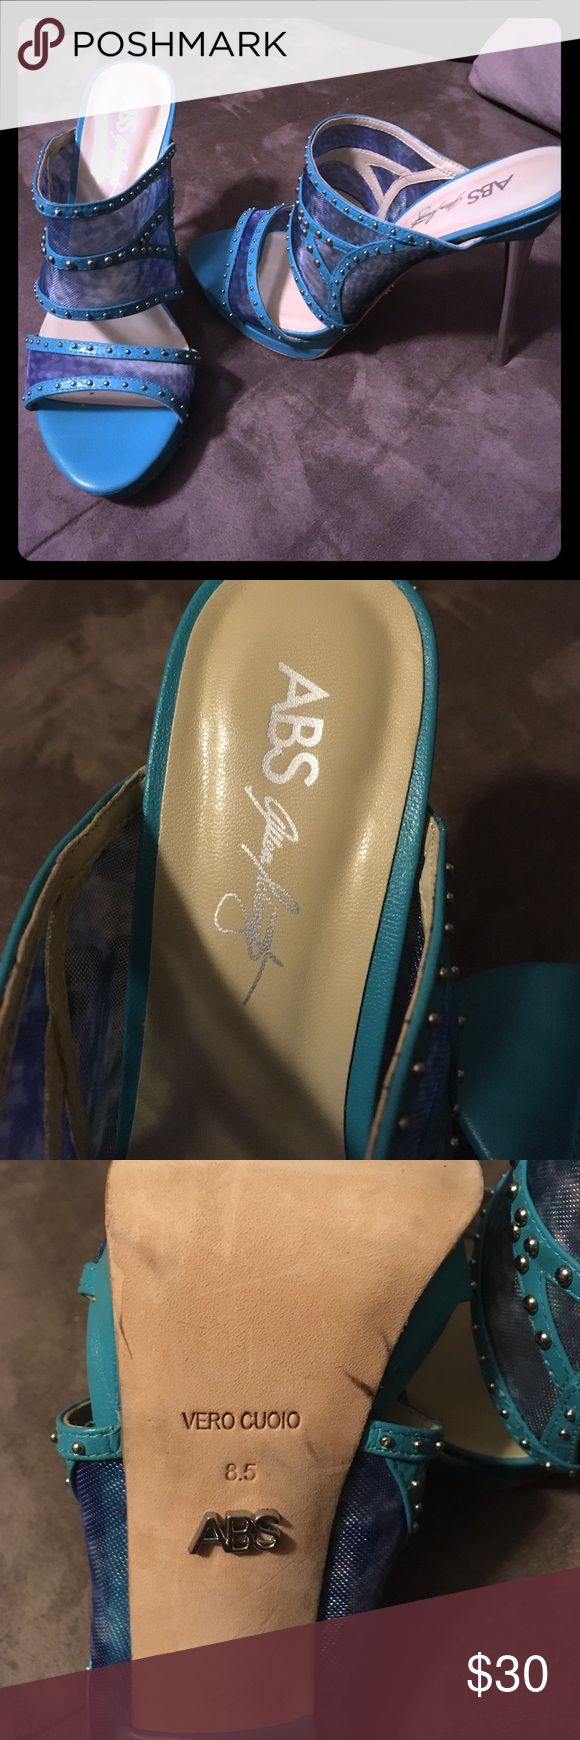 """ABS Allen Schwartz Vero Cuoio Teal Kitten Heels Worn once but only inside!  Like new condition. 6"""" silver metallic heel. Teal mesh with silver beads. EUC. Smoke free home. All measurements are approximate. ABS Allen Schwartz Shoes Heels"""